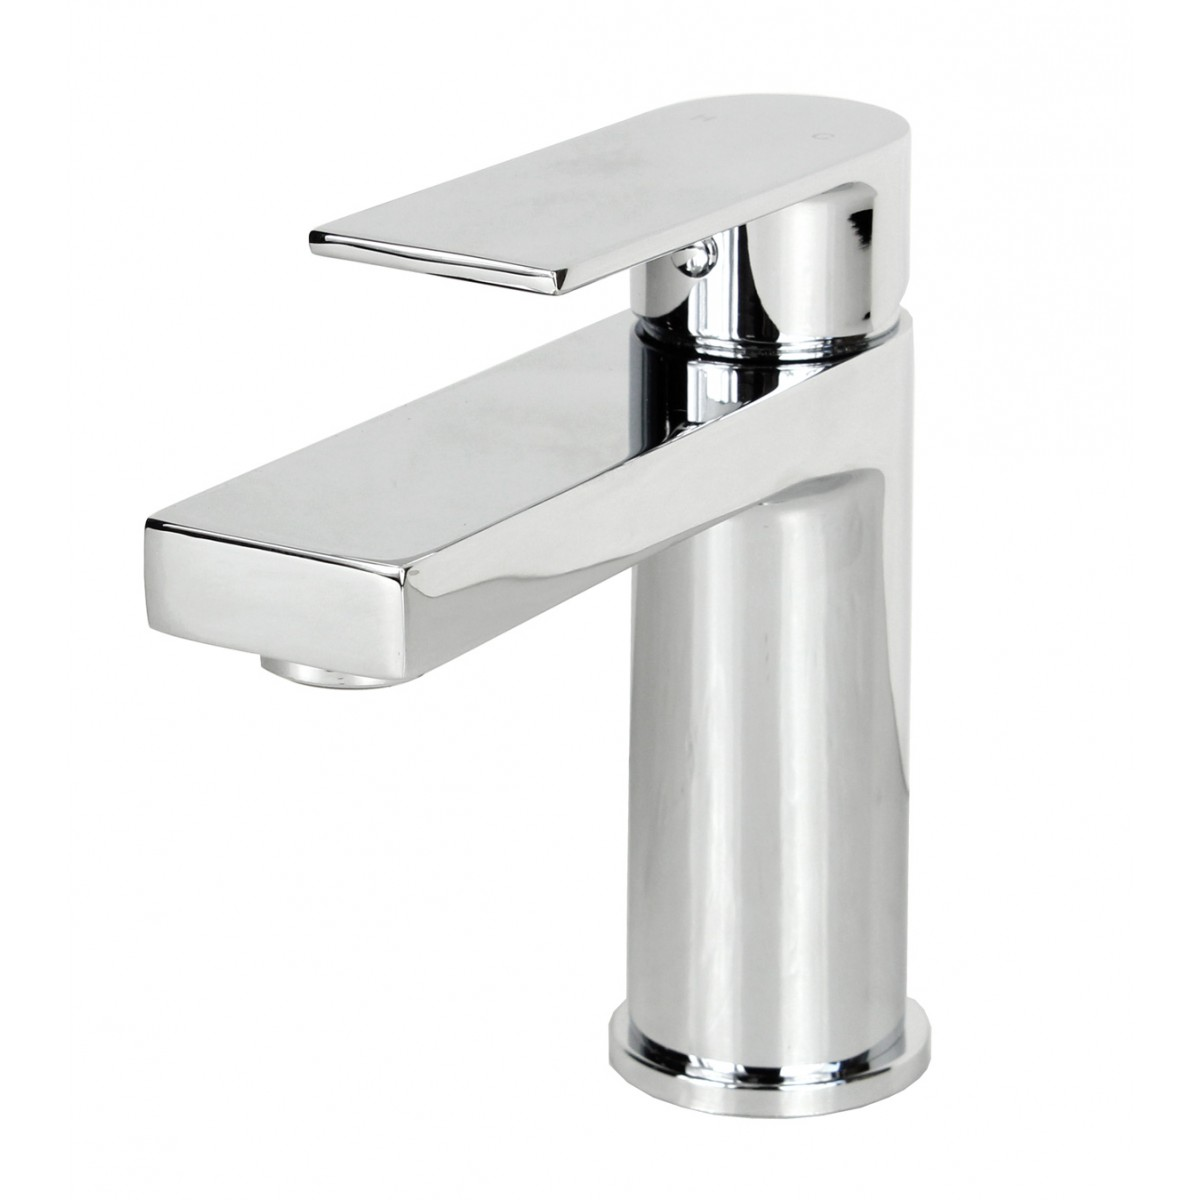 Single Hole Vessel Sink Faucet : Anna Polished Chrome Bathroom Vessel Sink Single Hole Faucet